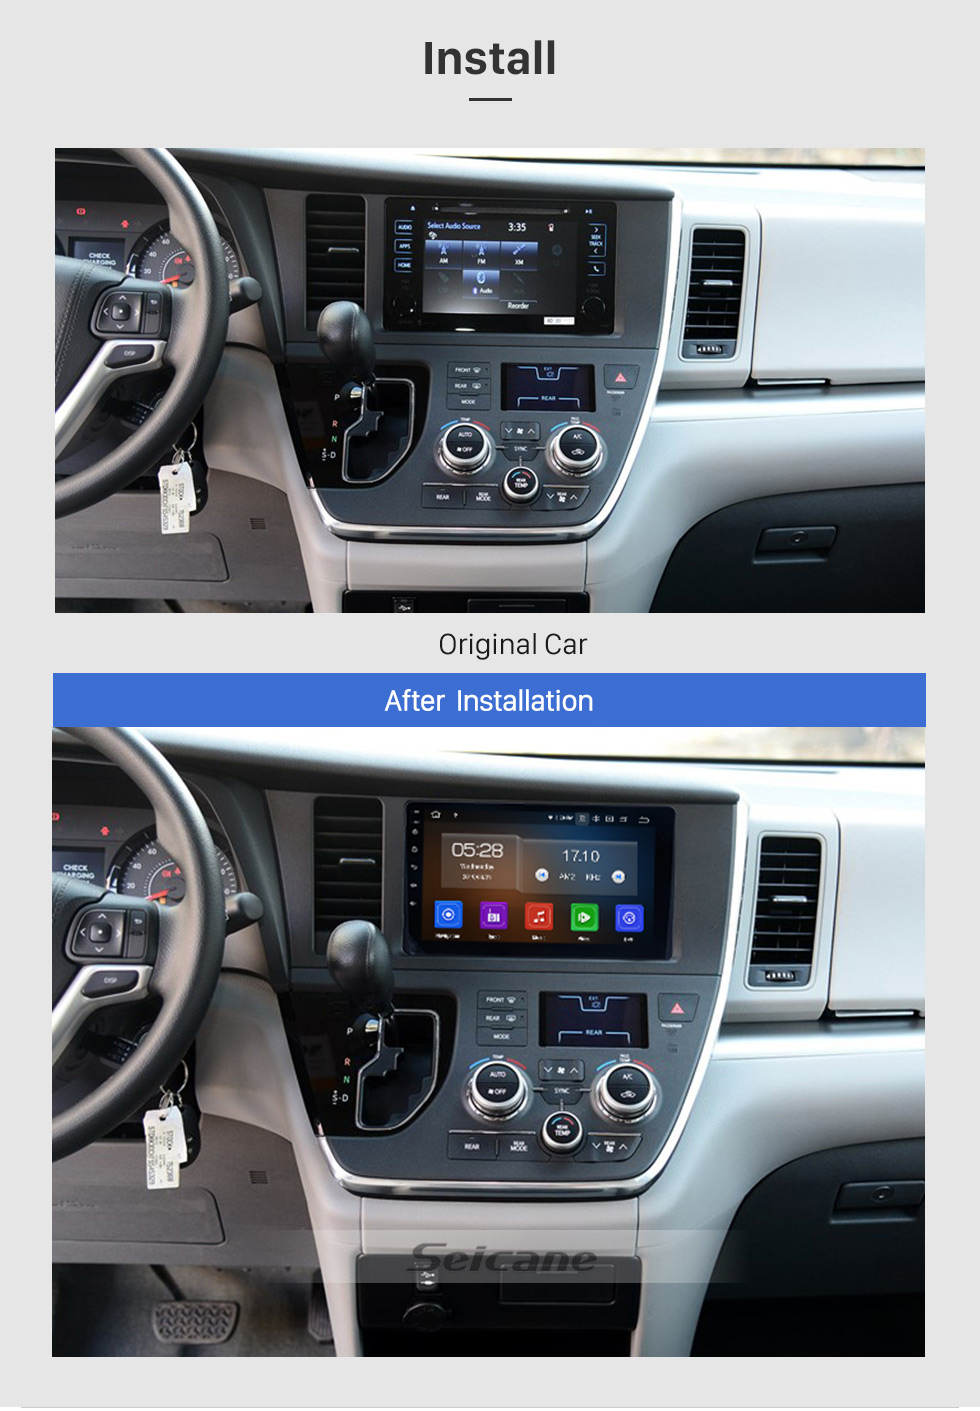 Seicane Aftermarket Android 10.0 Radio GPS Navigation system for 2015-2018 Toyota Sienna with Capacitive Touch Screen TPMS DVR OBDII Control USB Bluetooth 3G WiFi Video AUX Rear camera